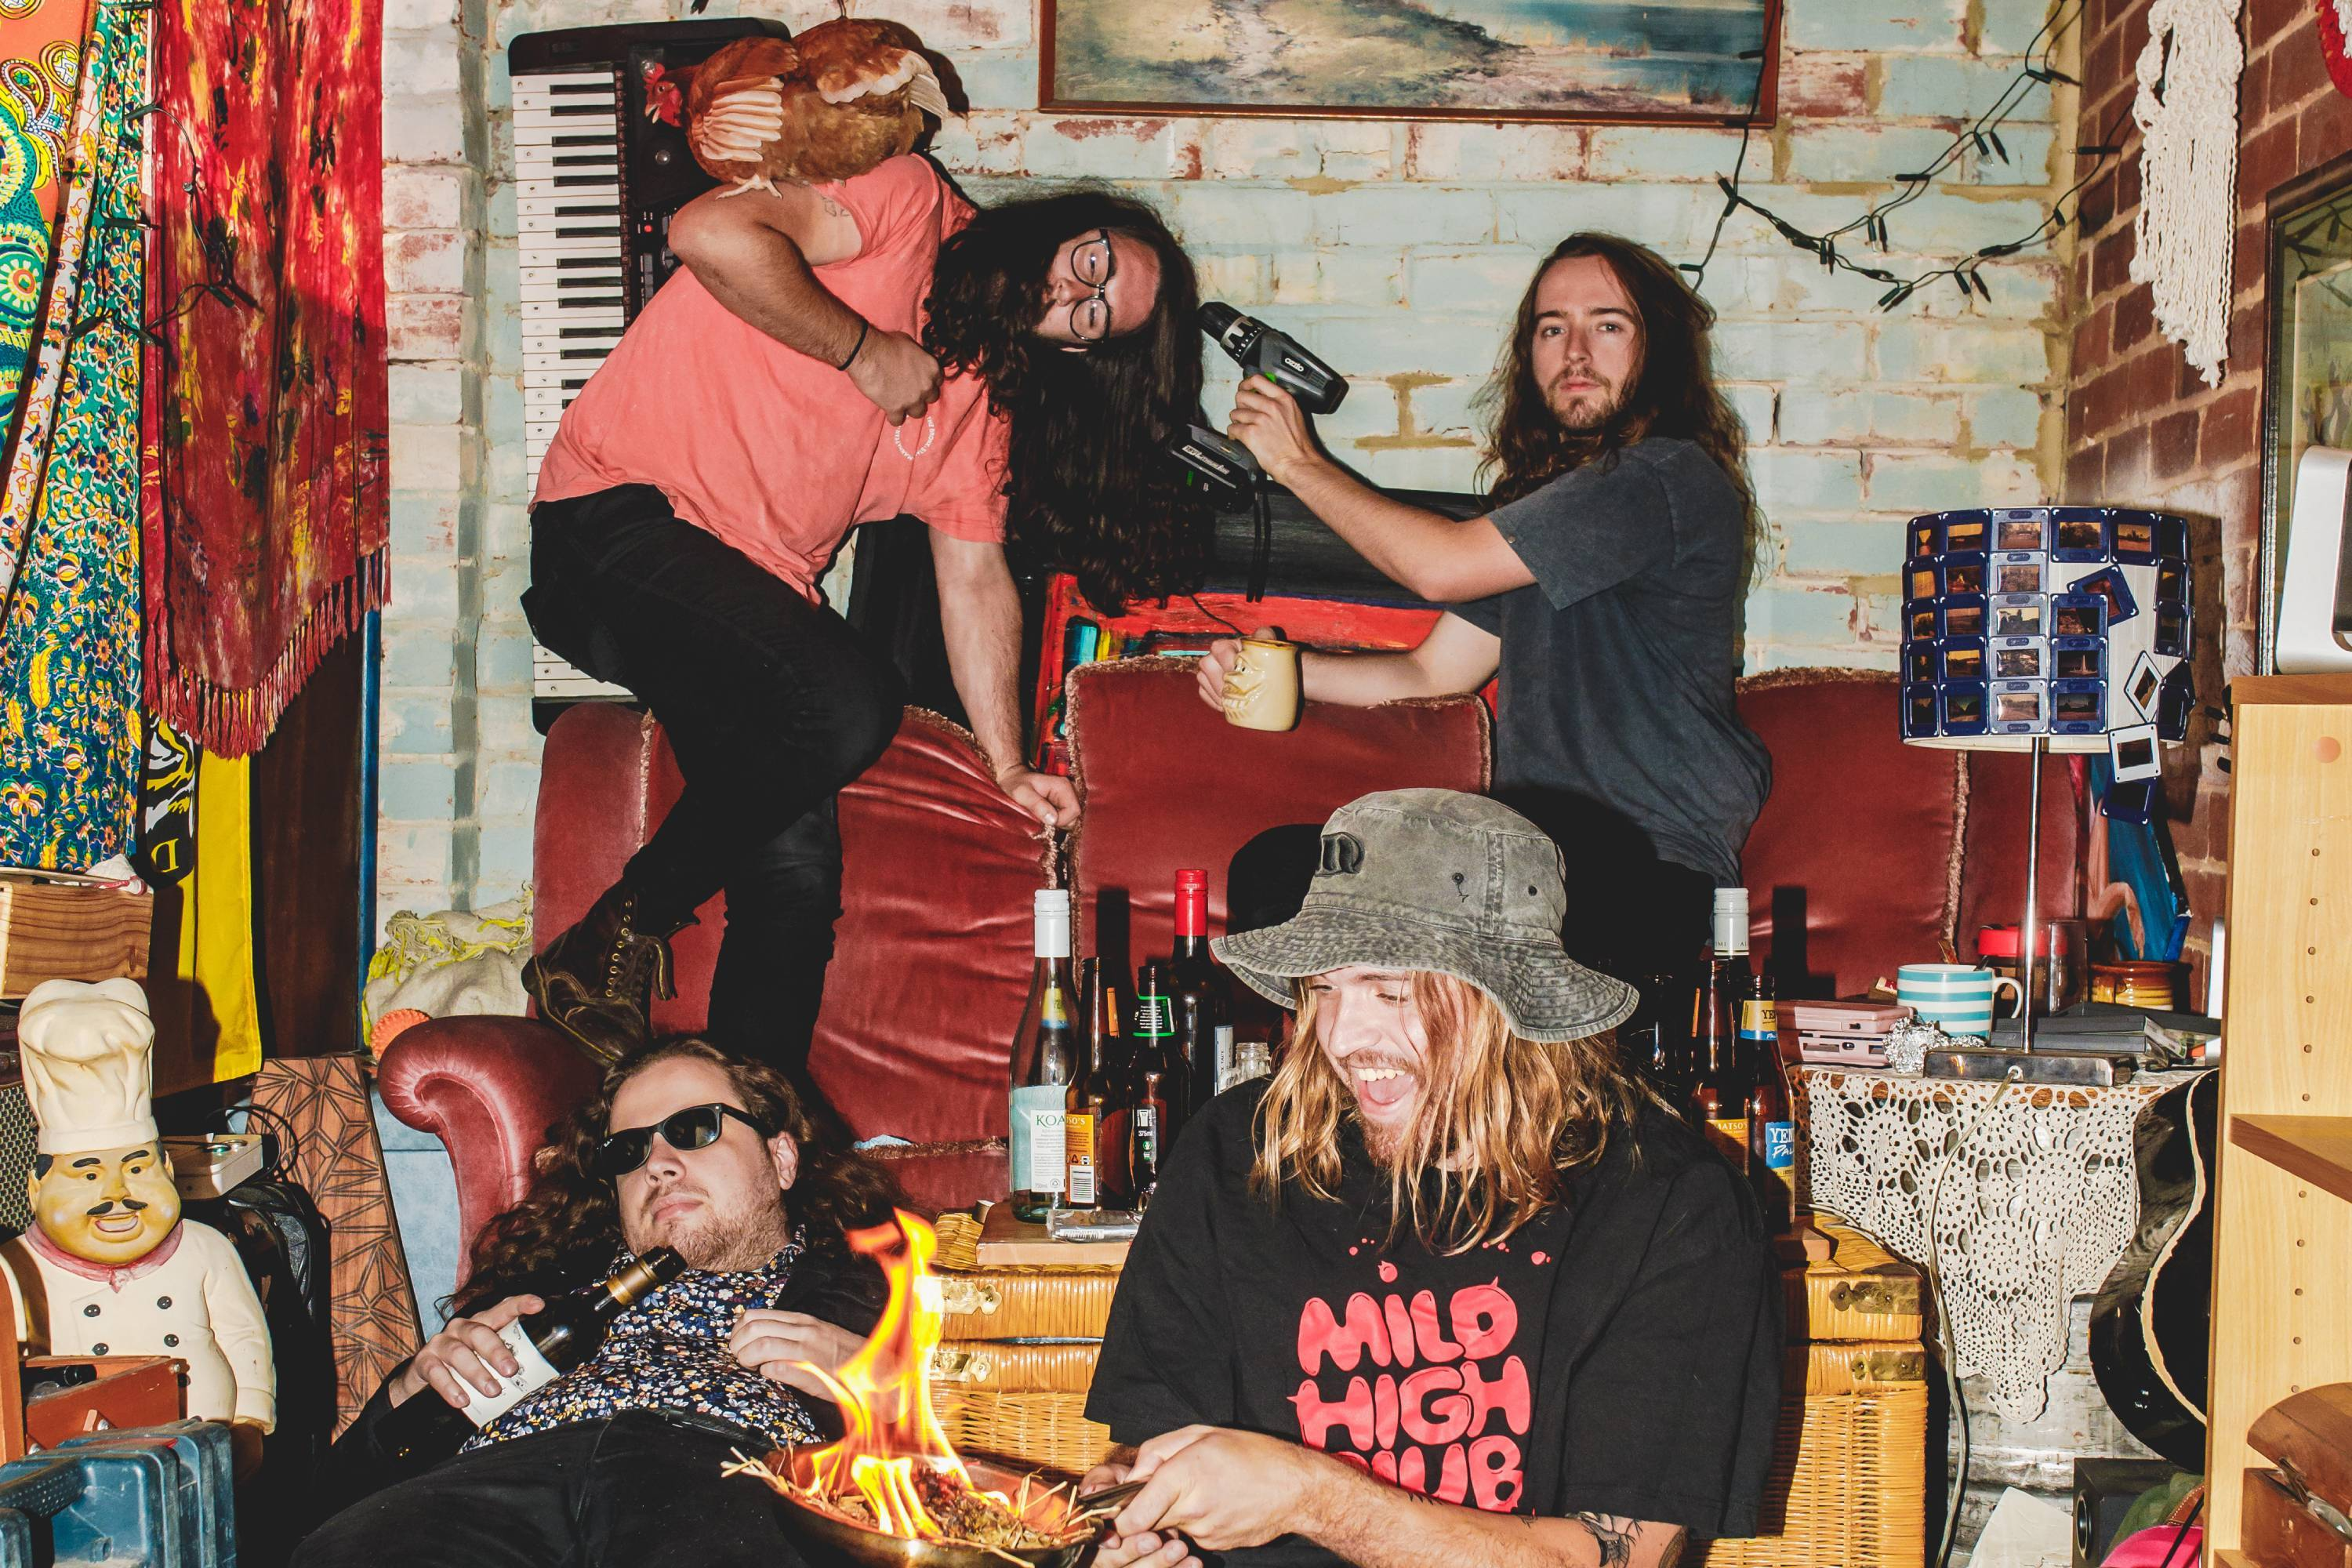 Psychedelic Porn Crumpets announce new album 'And Now For The Whatchamacallit'